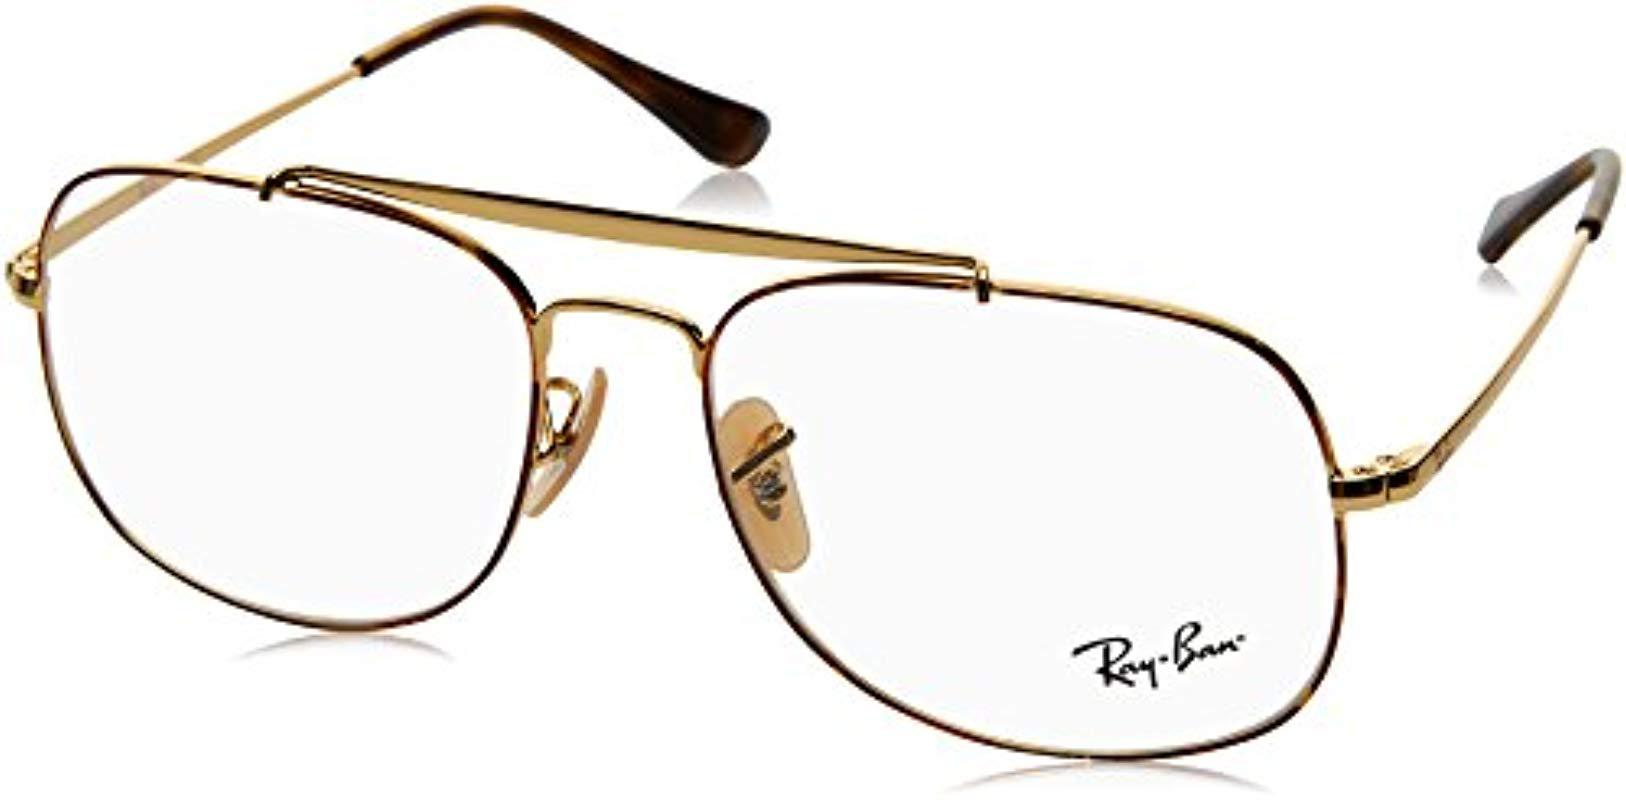 441a165840 Ray-Ban Rx6389 2945 55 The General Glasses In Gold Rx6389 2945 55 in ...